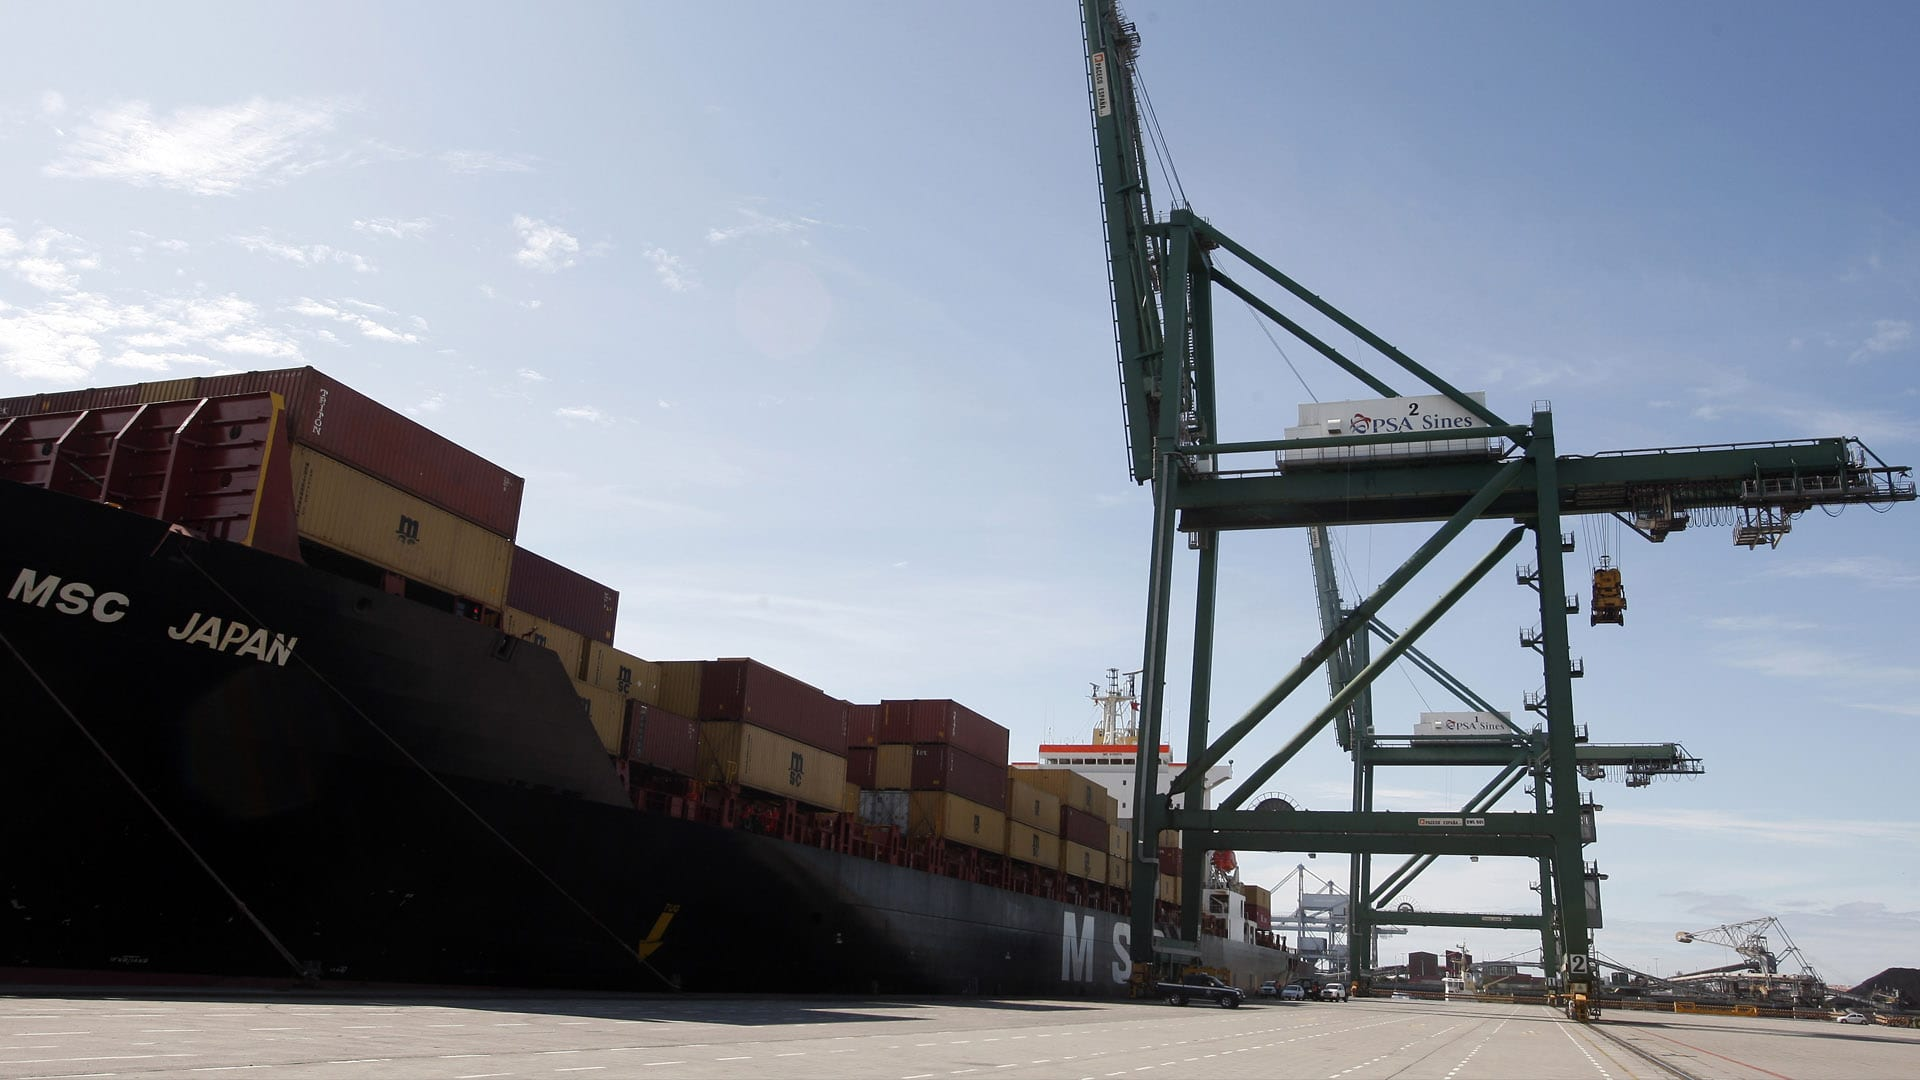 Portugal Launches Tender for Vasco da Gama Terminal in Port of Sines